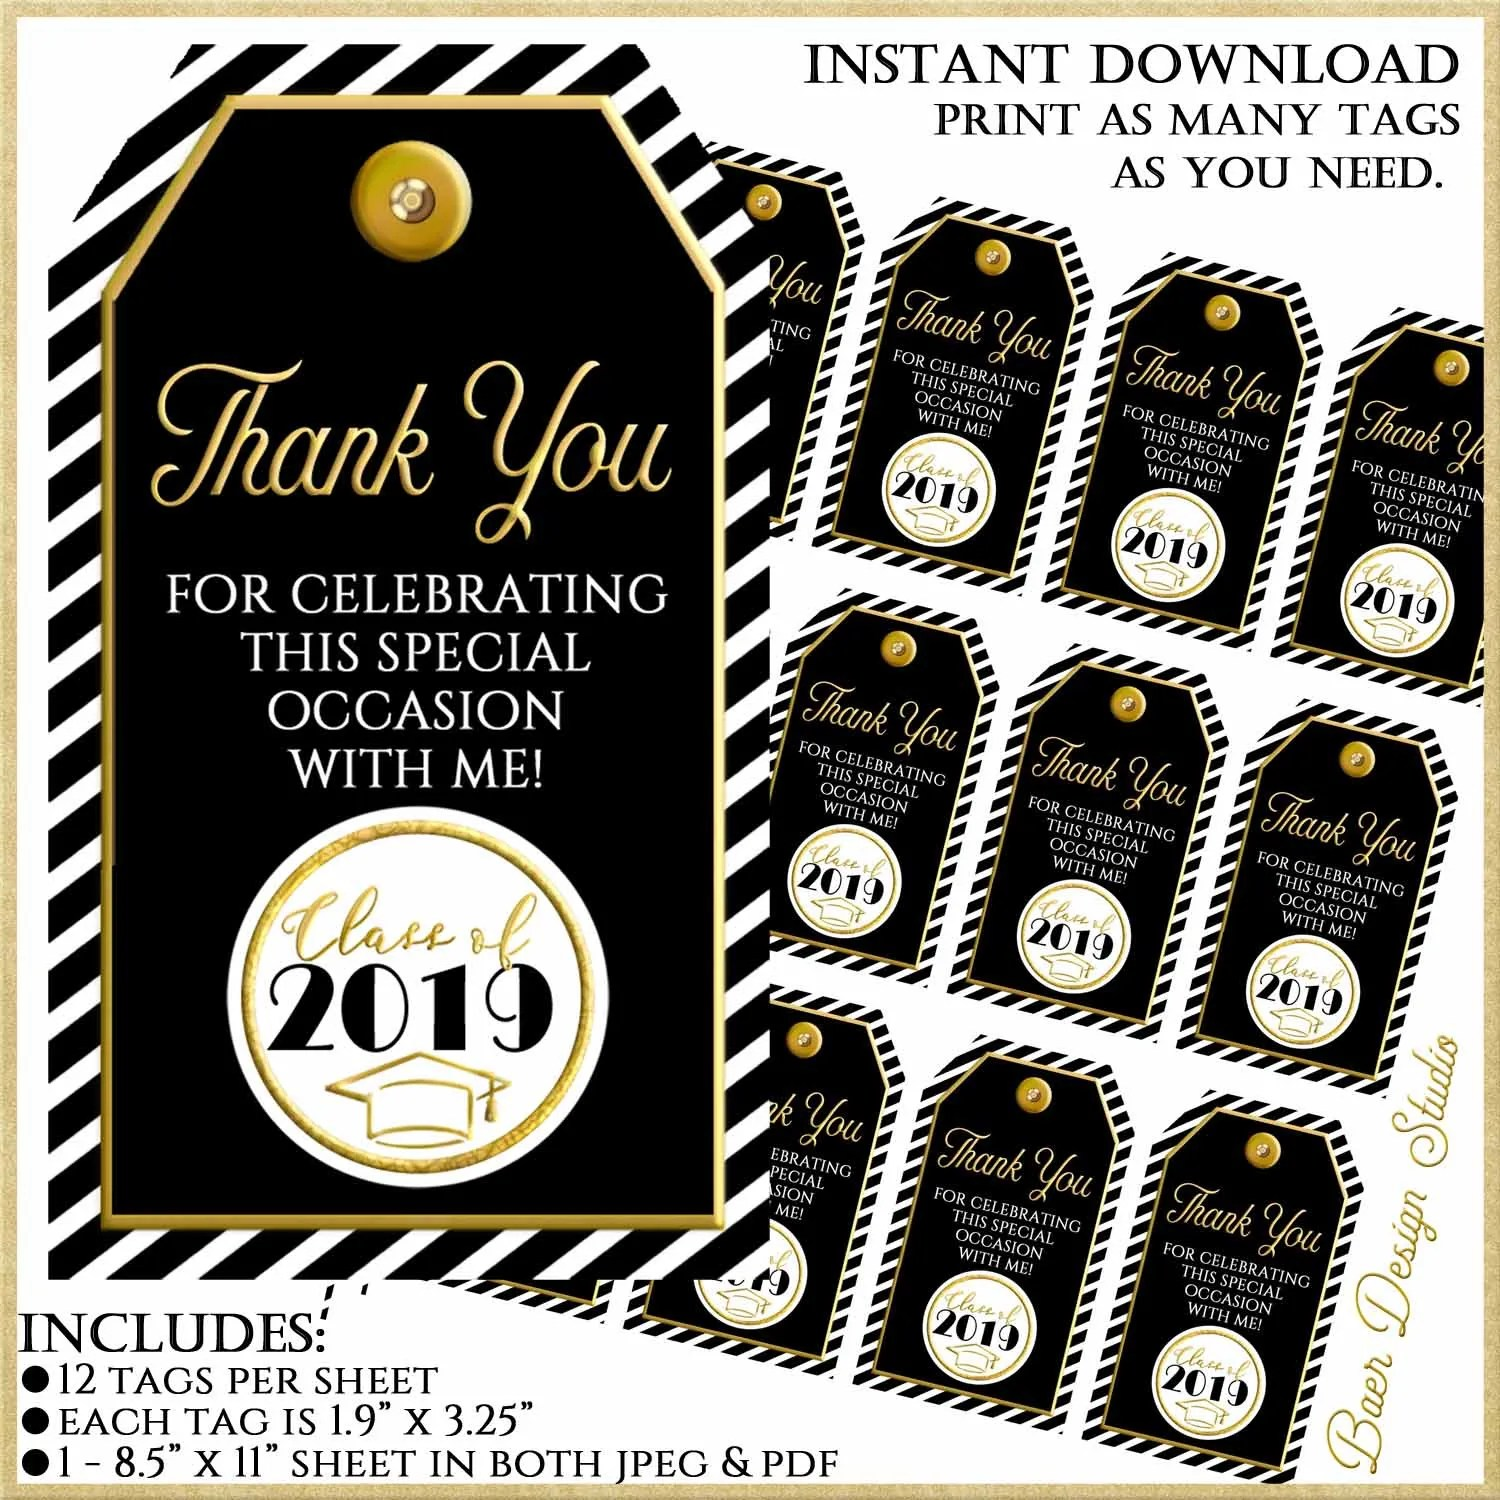 photograph regarding Thank You Printable Tag named Printable tags for Favors, Black and Gold Thank yourself Tags, Instantaneous Obtain